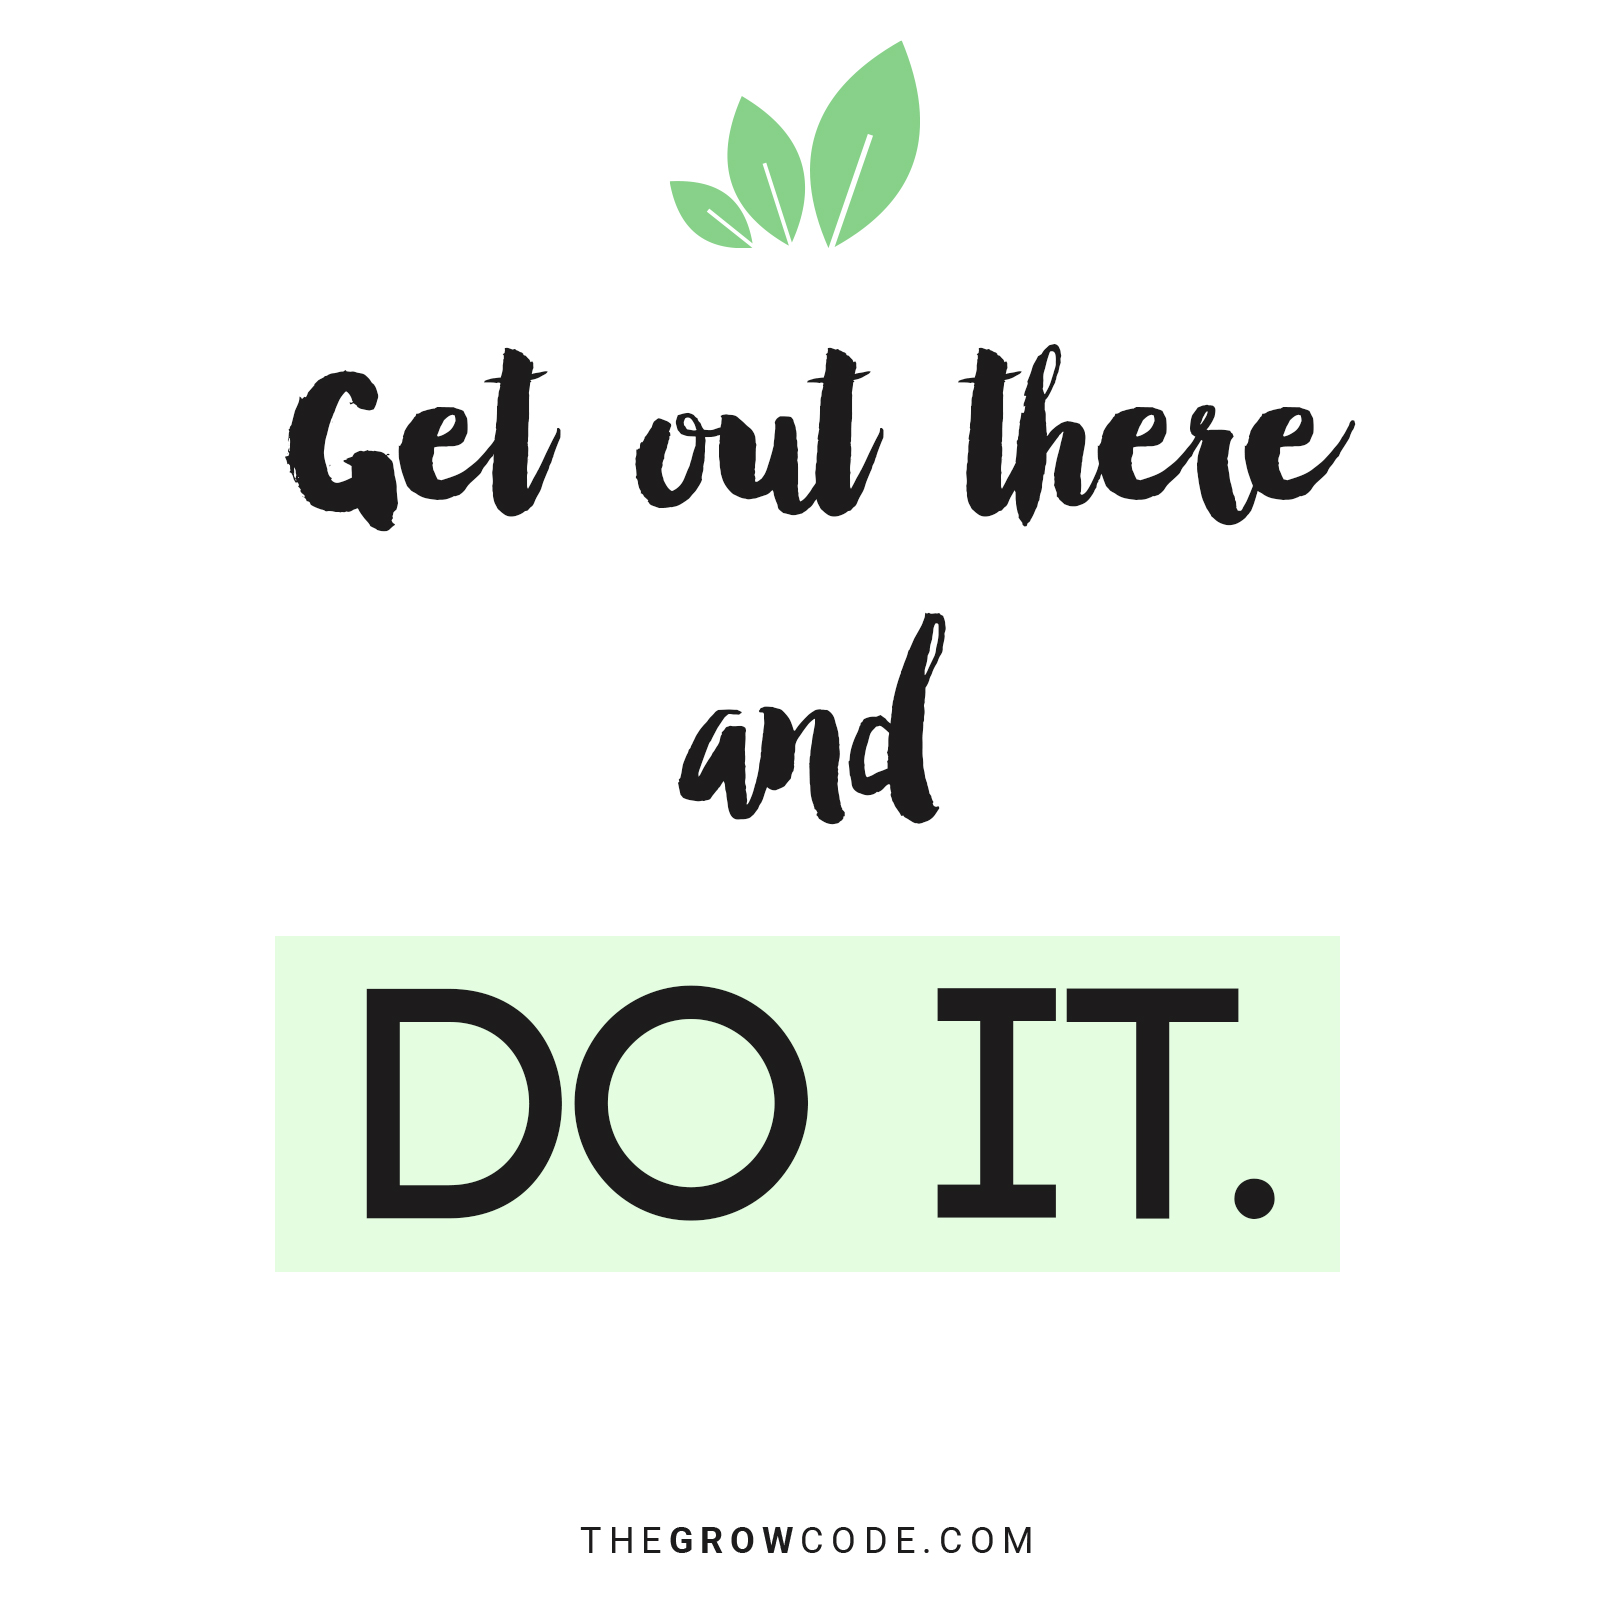 Get out there and DO IT.